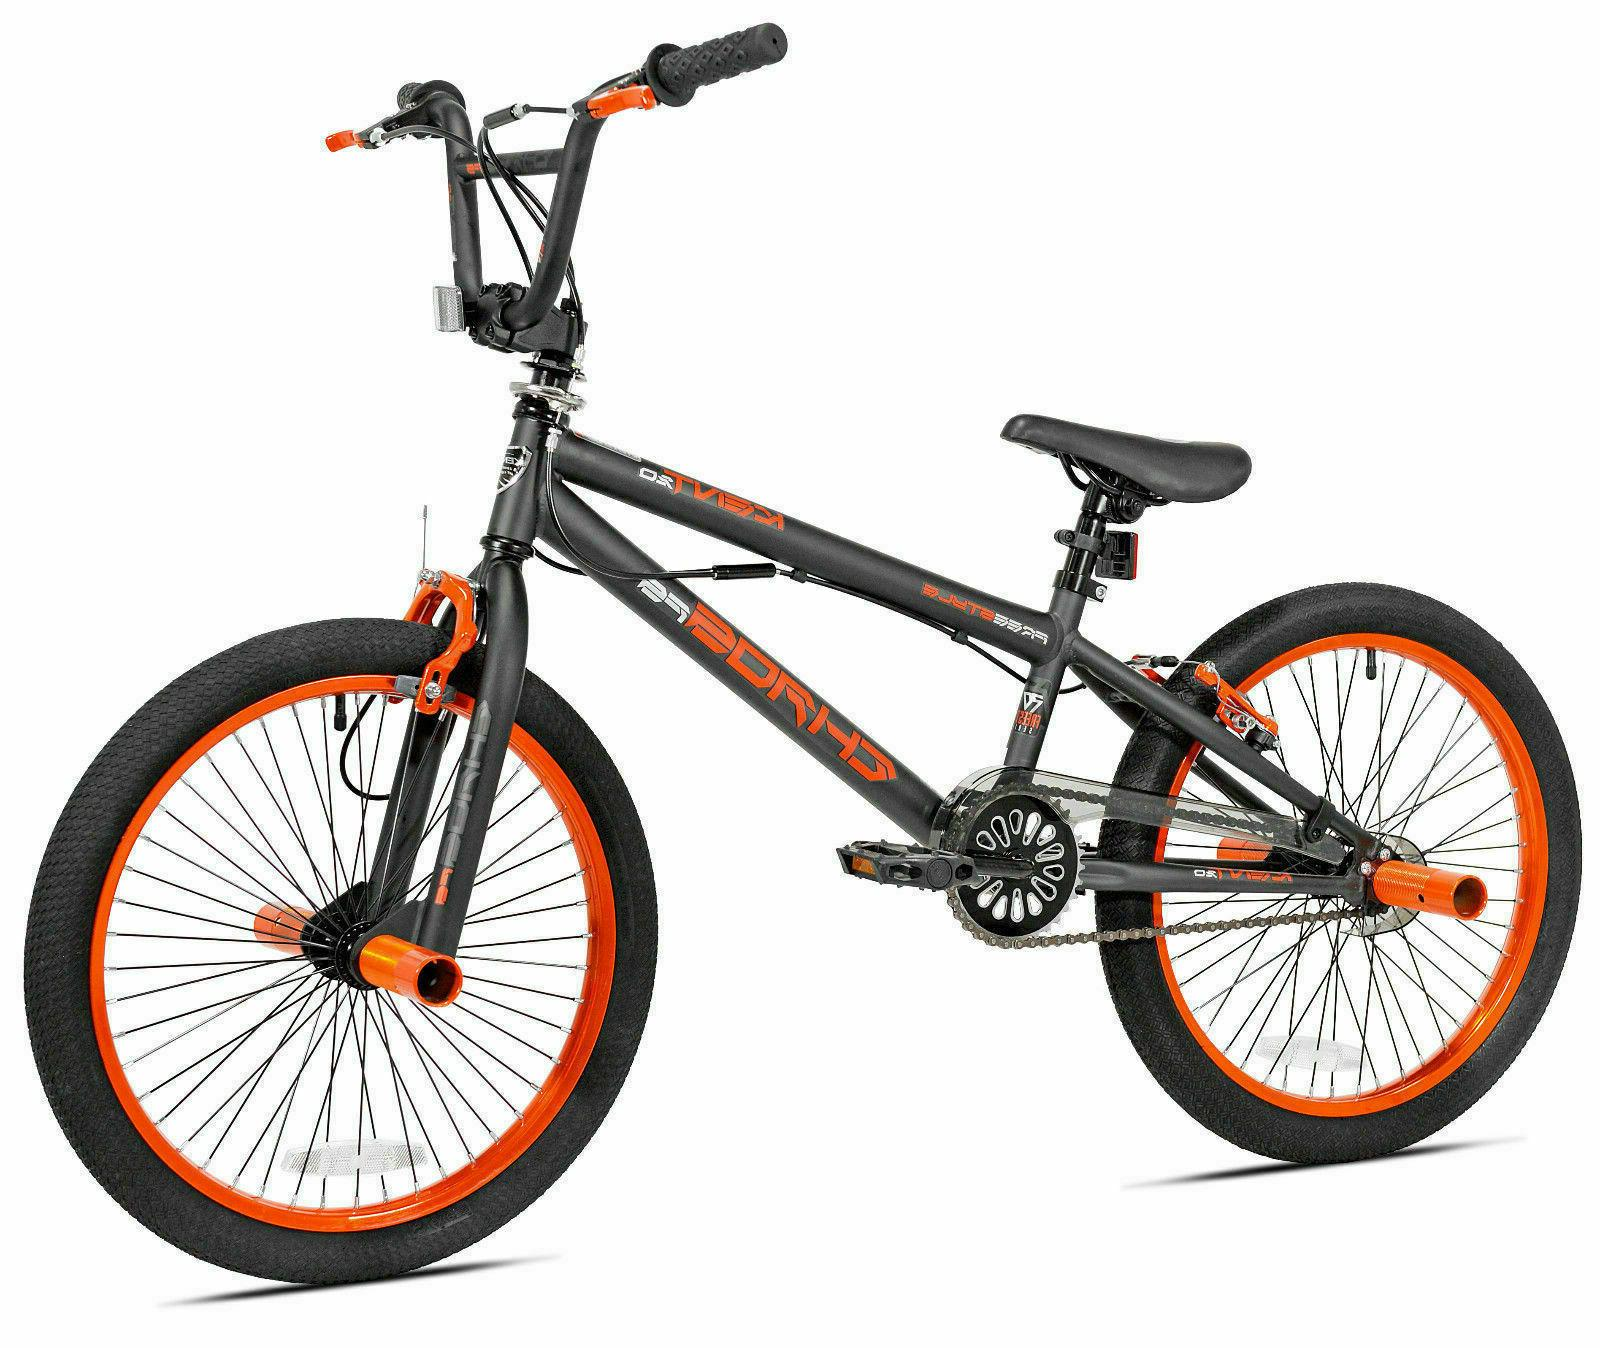 20in Kent Trick Bike 20 Inch BMX Freestyle Front Rear Brakes Pegs For Kids Boys